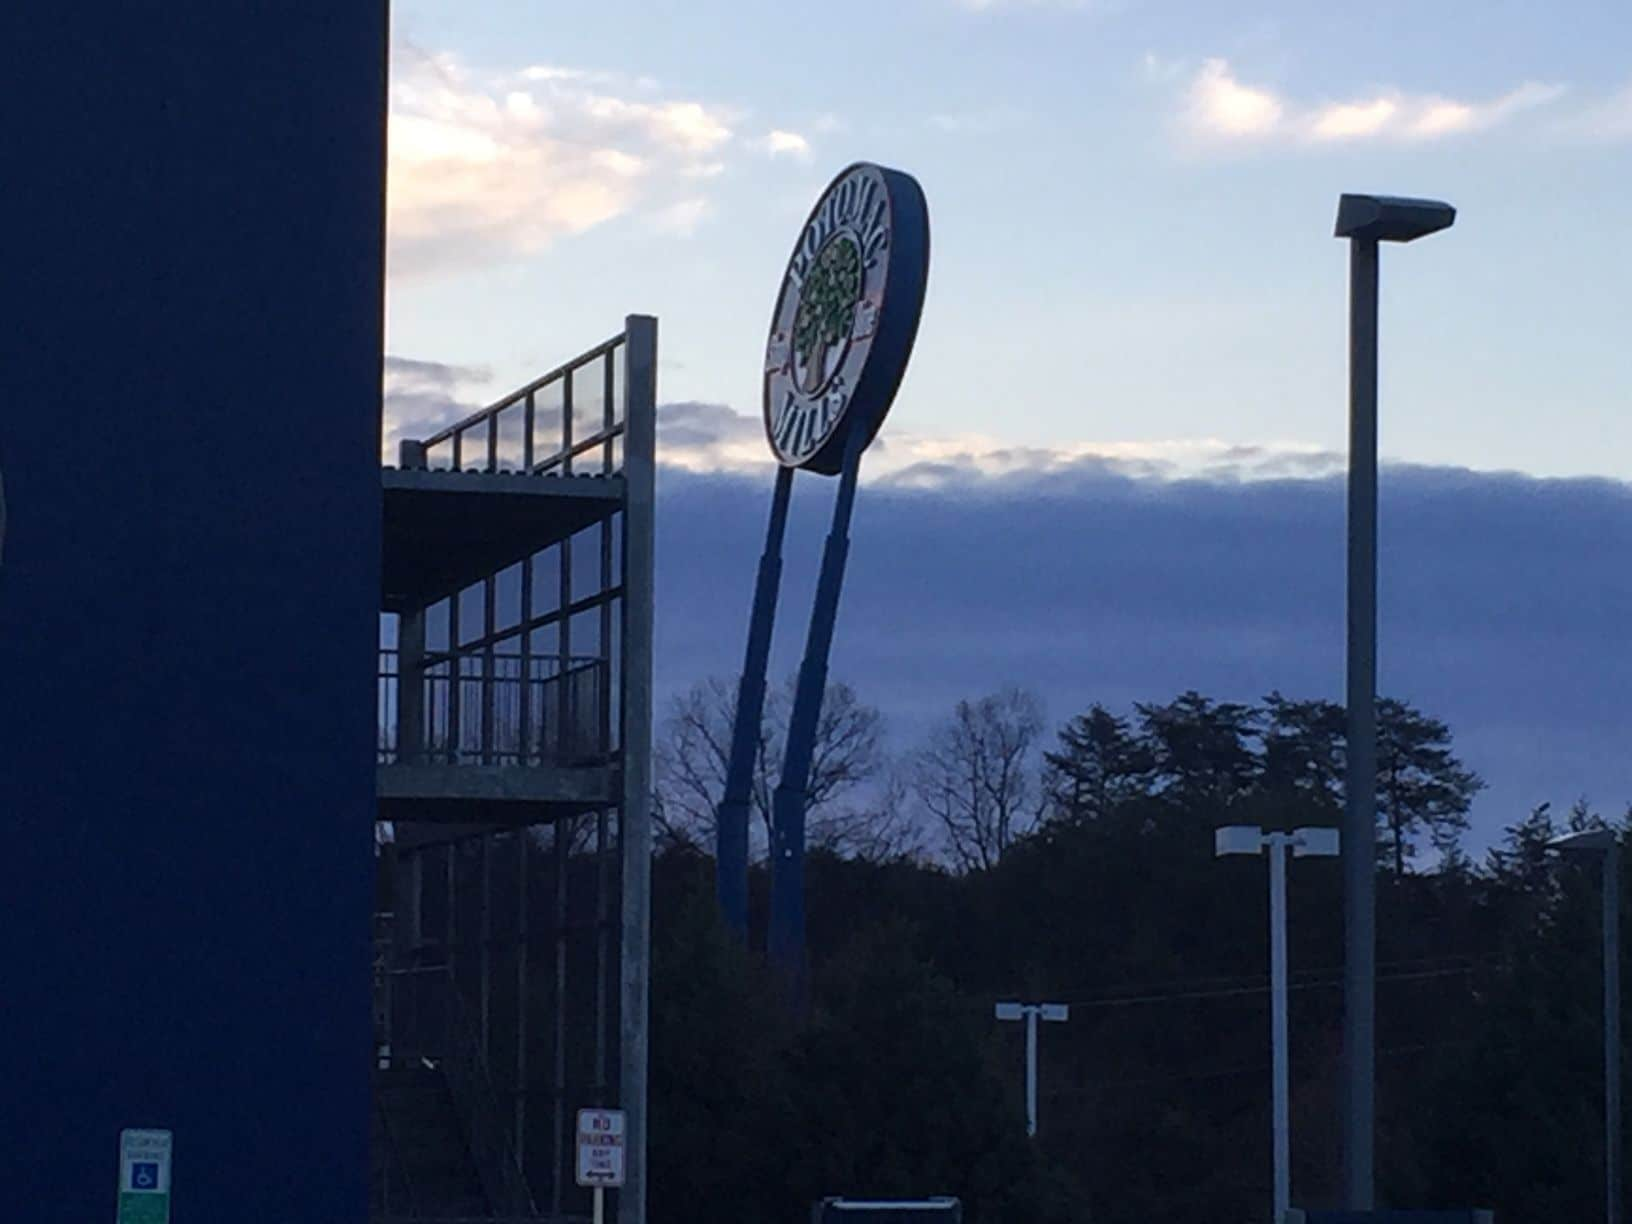 Powerful winds have caused the sign for Potomac Mills to lean dangerously. (WTOP/John Domen)